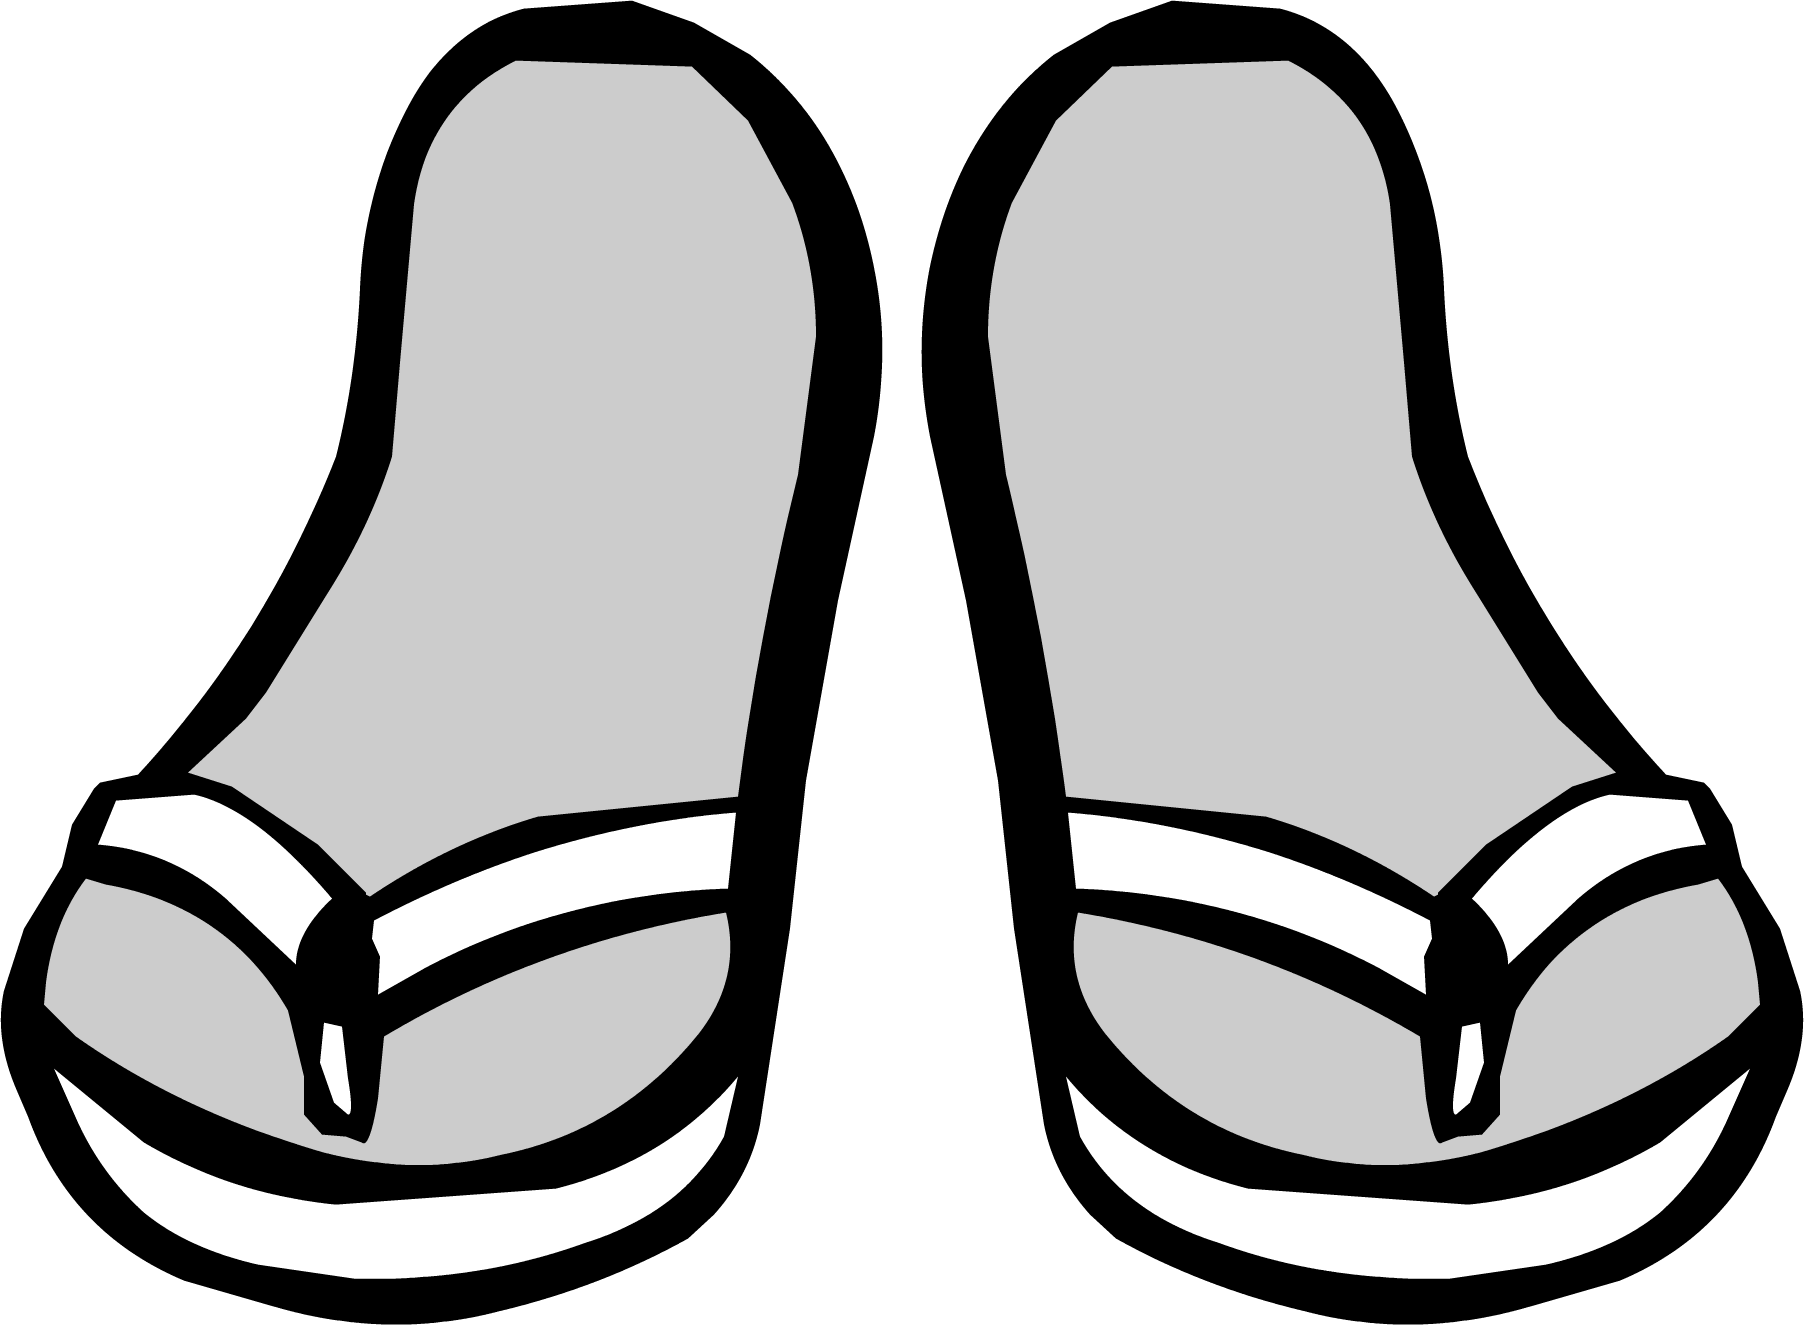 svg royalty free stock Flip flops clipart clothing item. White sandals club penguin